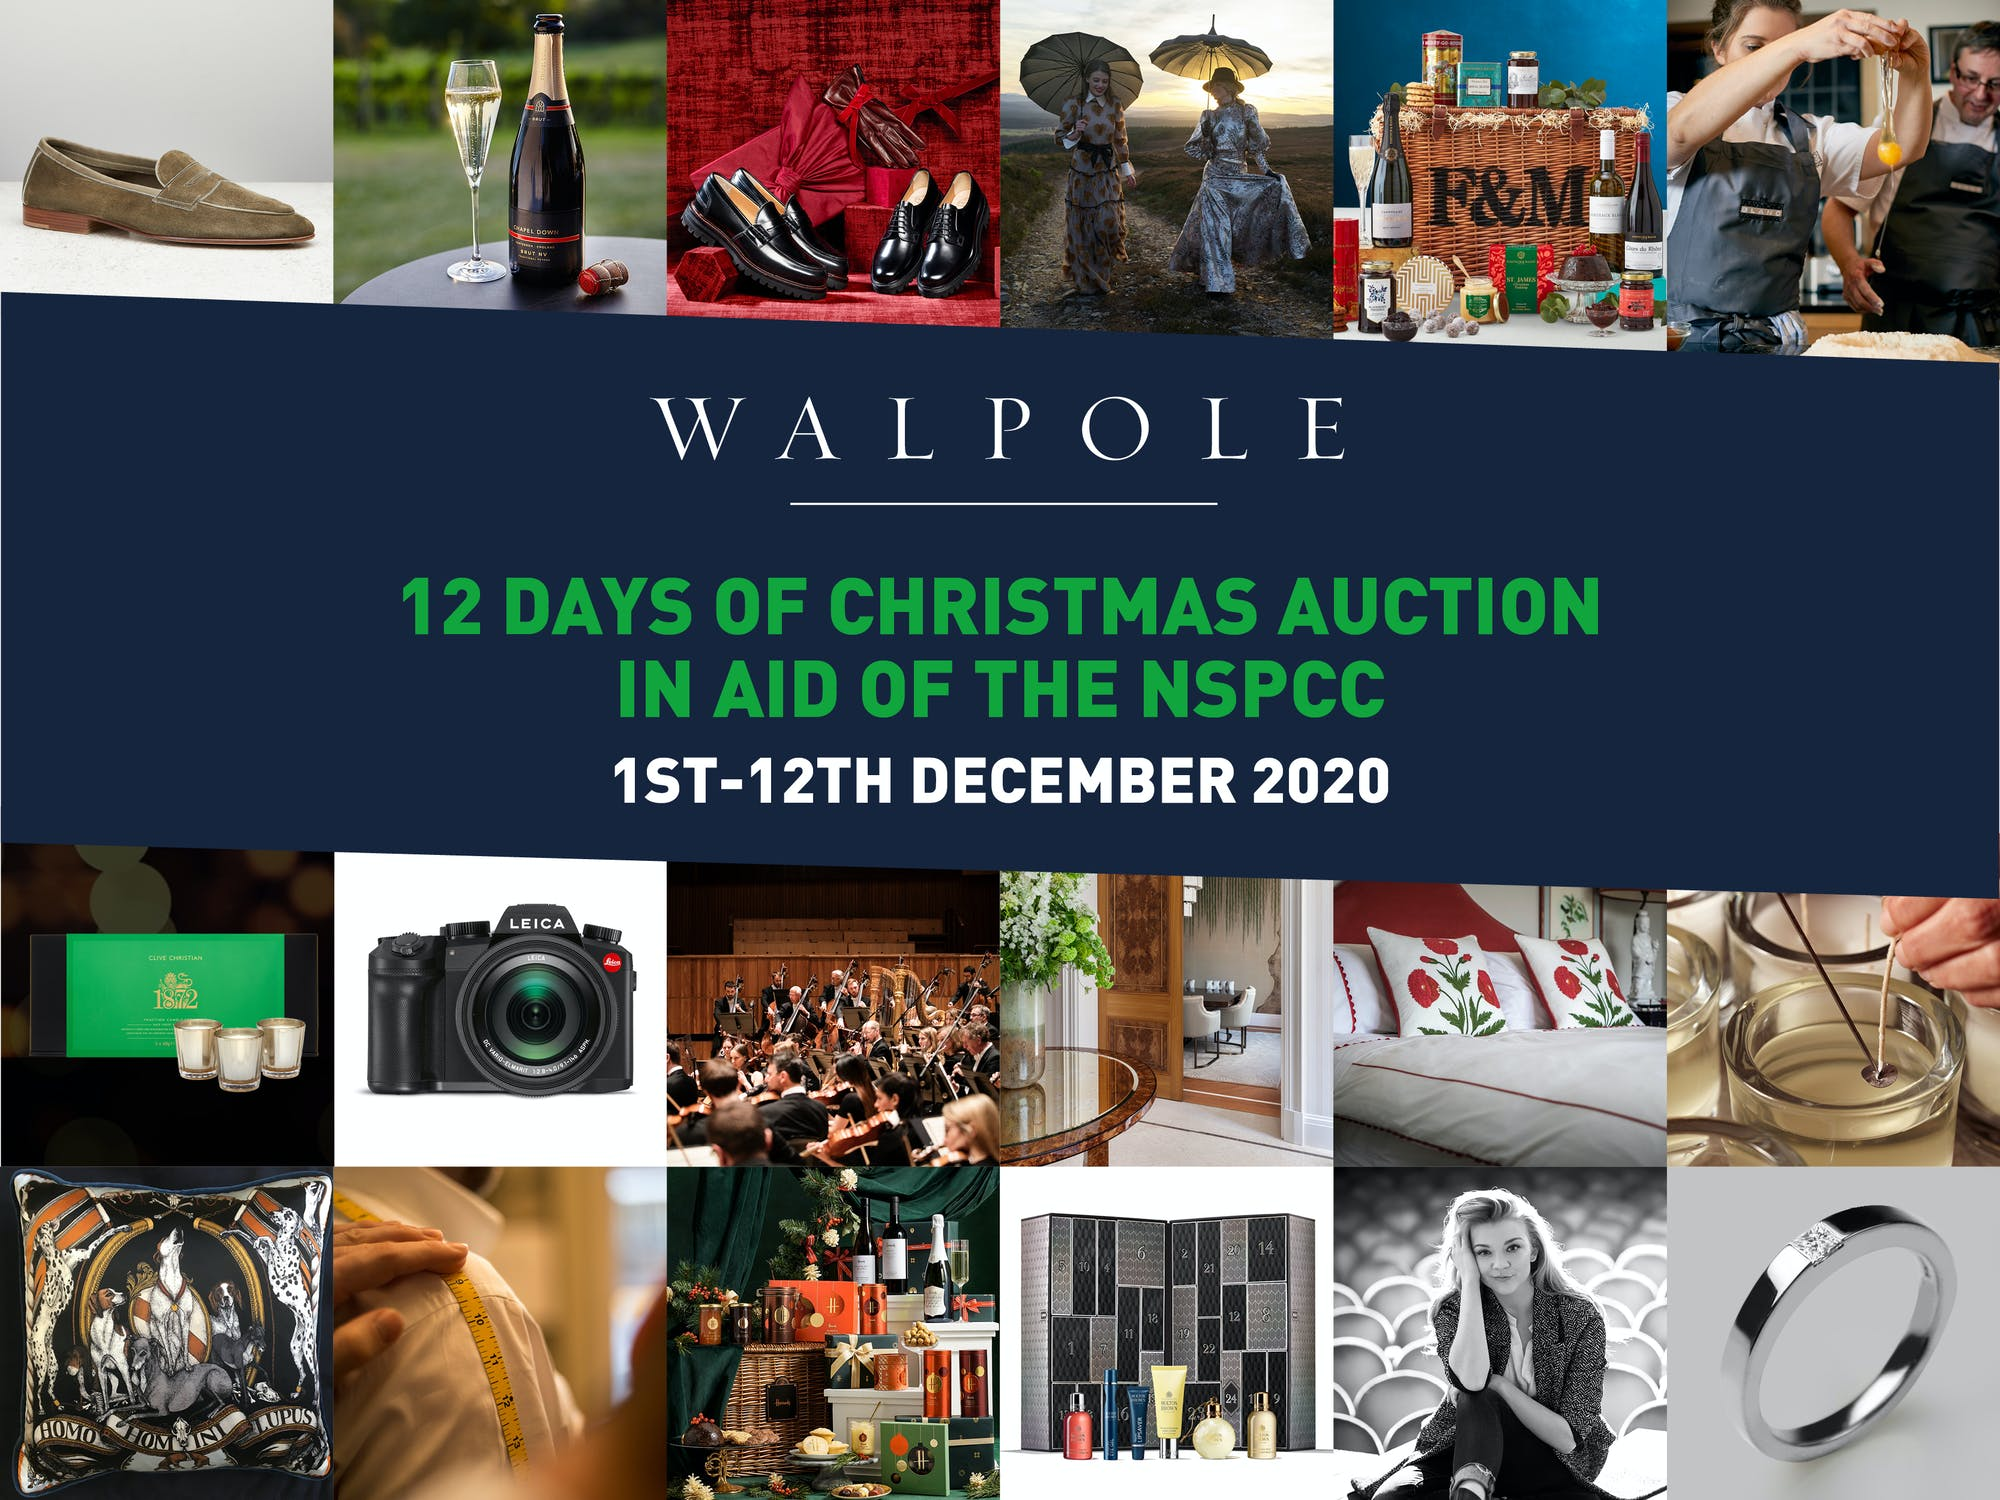 12 Days of Christmas Auction in aid of the NSPCC